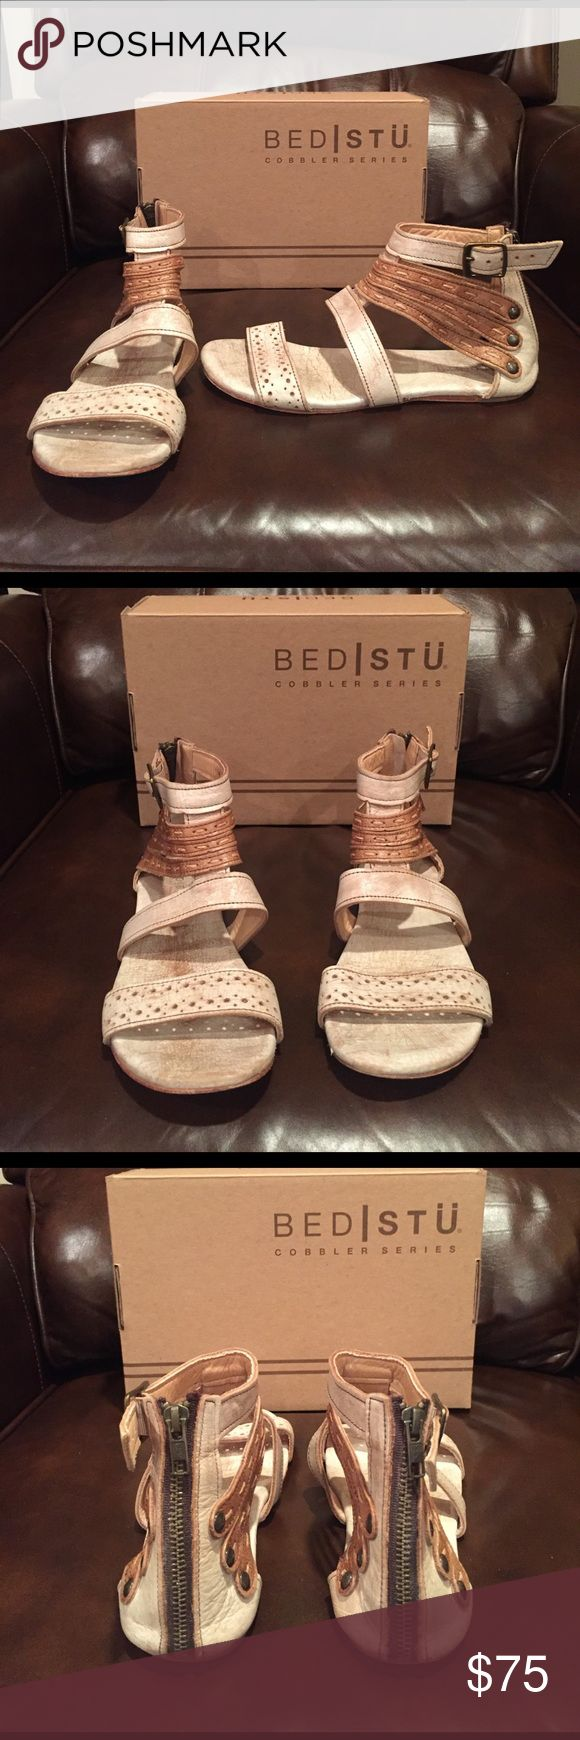 Like New Bed Stu SANDALS Worn only once! Excellent condition! SZ 9! Very, very comfortable! Bed Stu Shoes Sandals